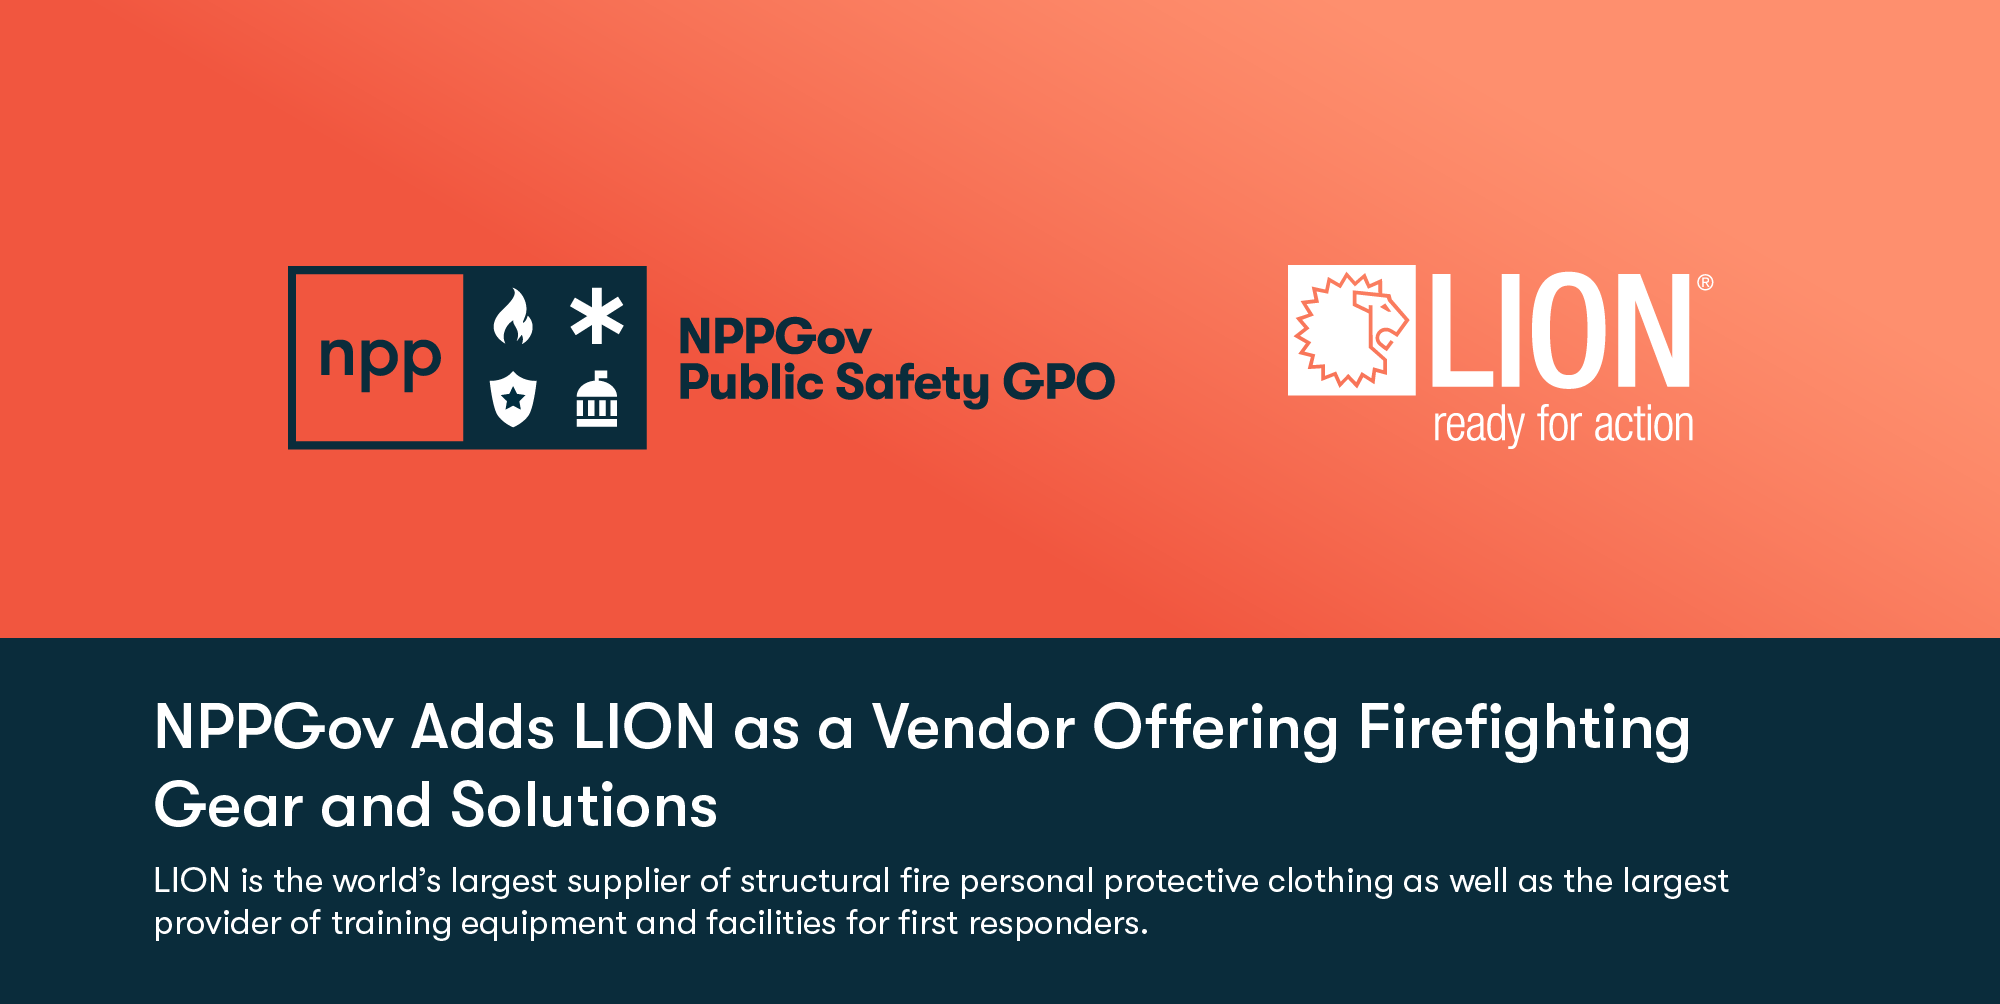 NPPGov Adds LION as a Vendor Offering Firefighting Gear and Solutions